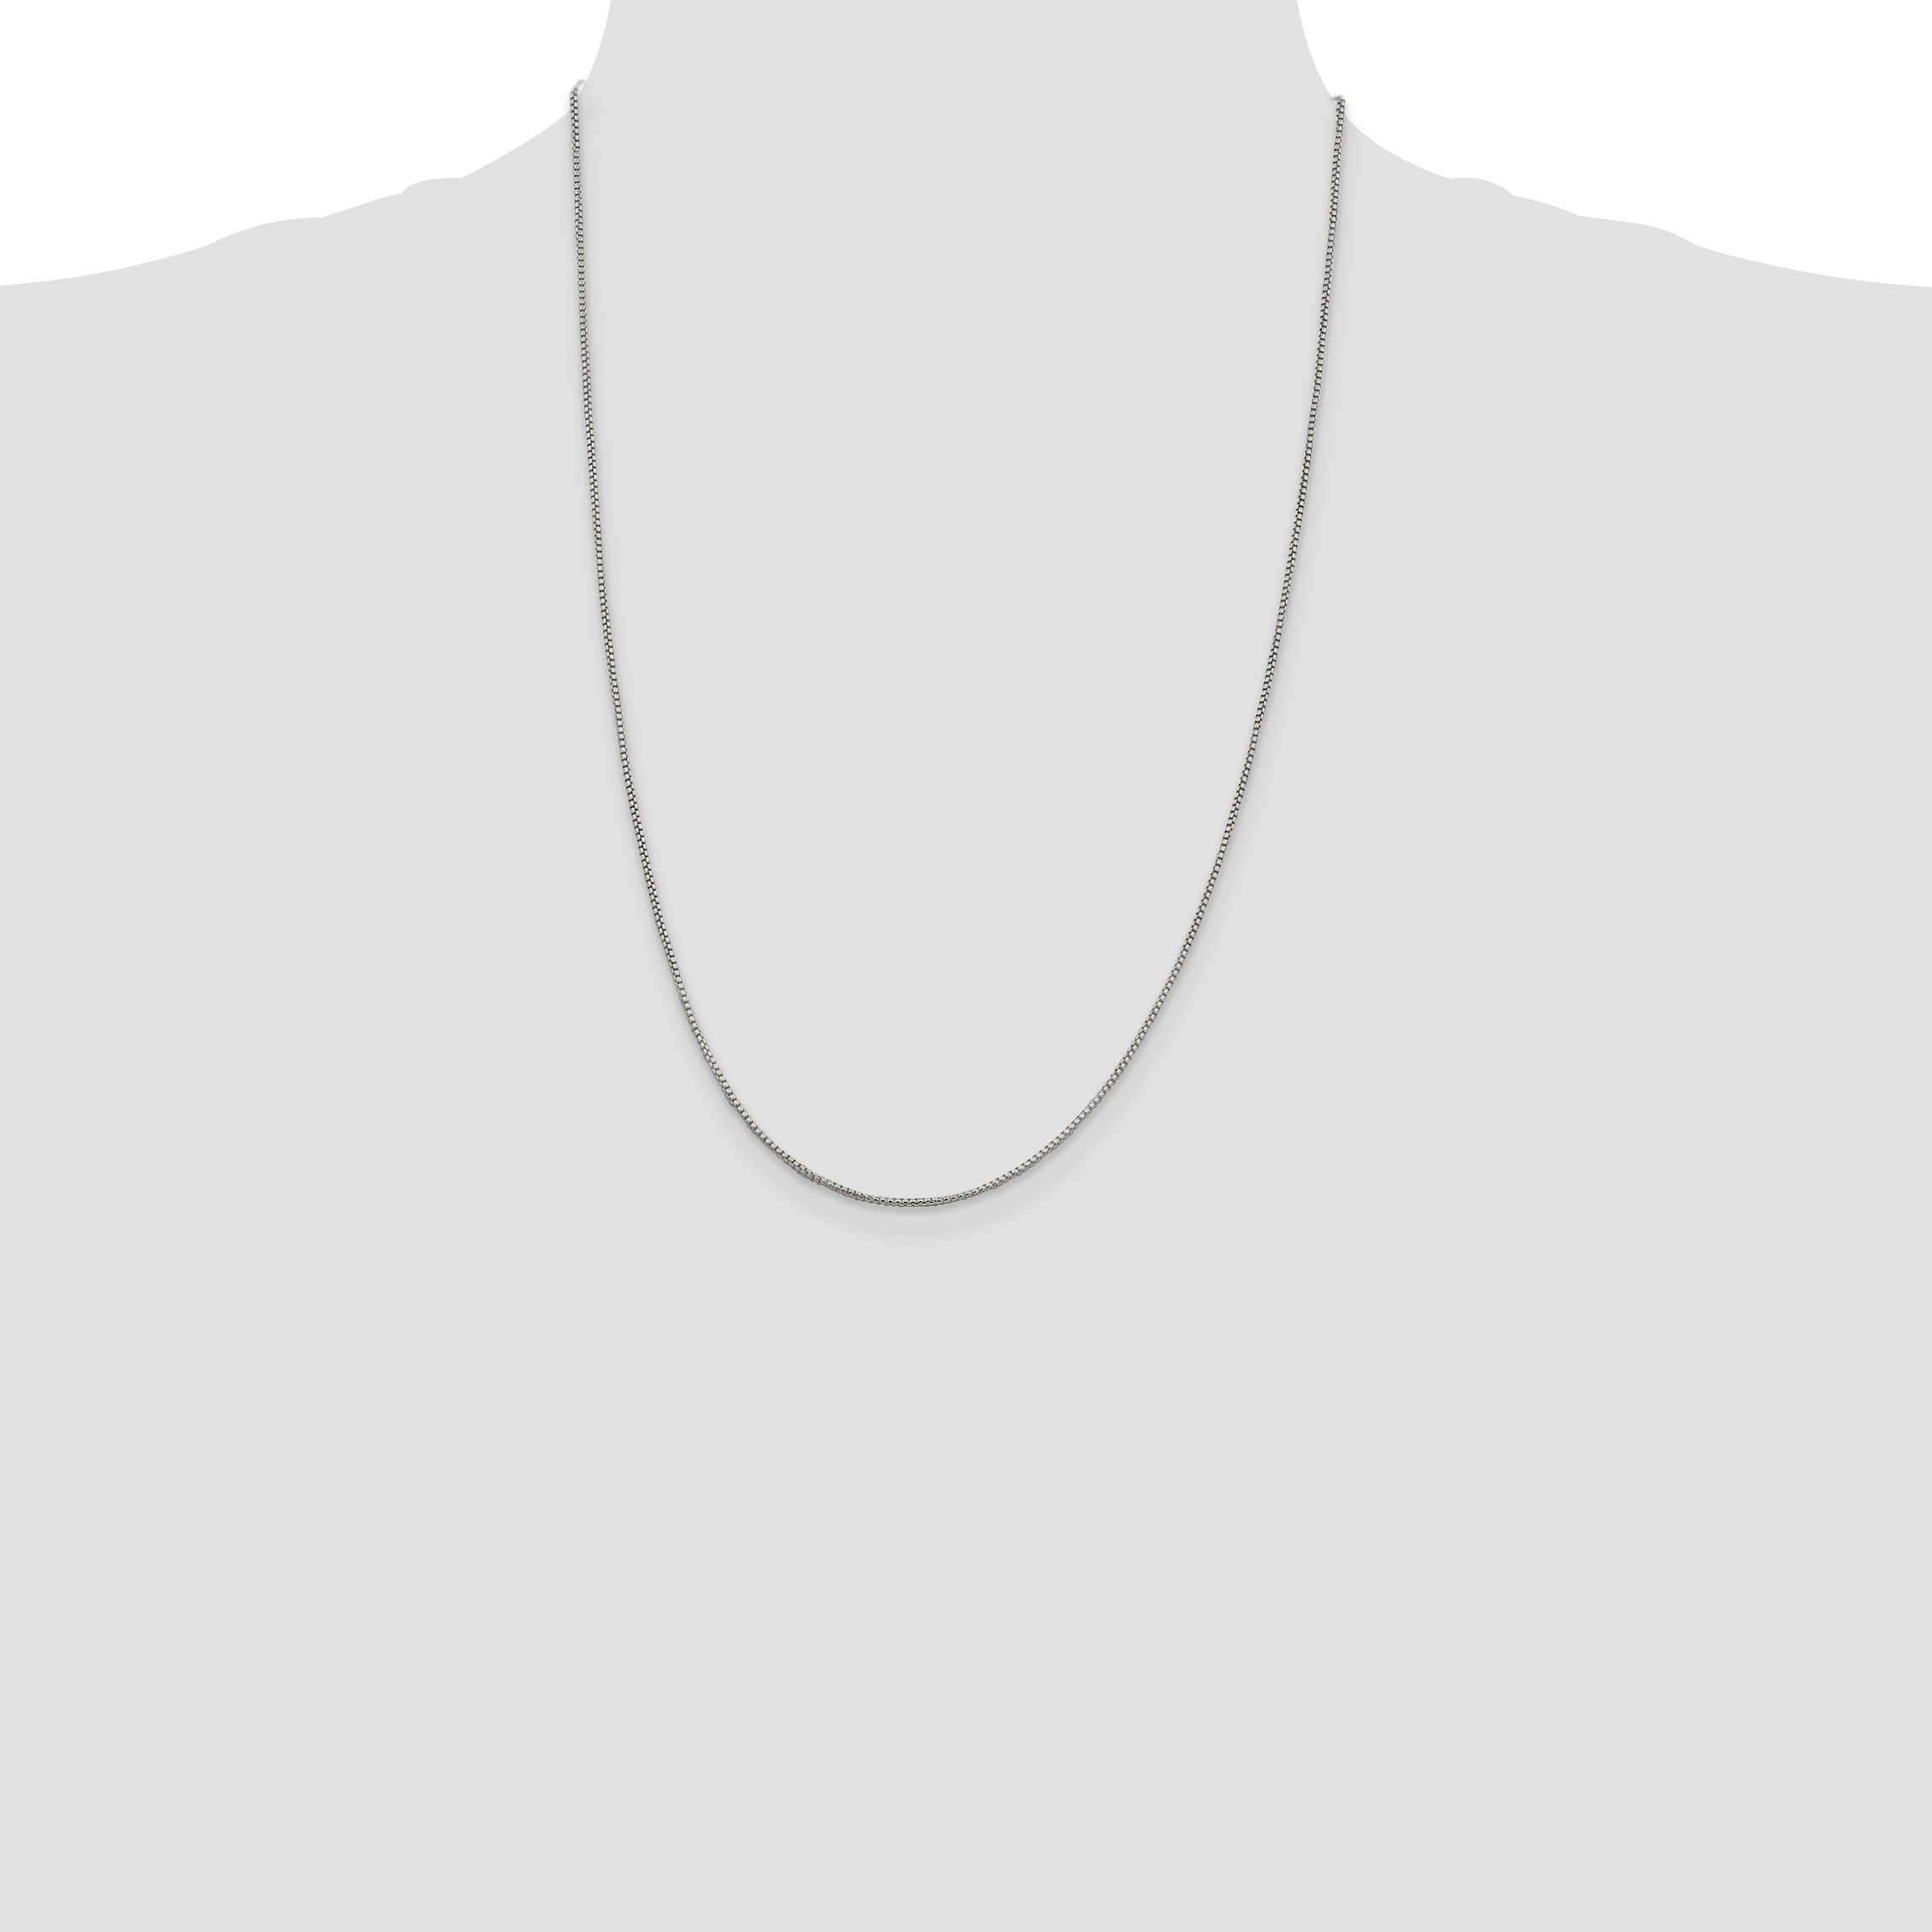 925 Sterling Silver 1.25mm Round Link Box Chain Necklace 24 Inch Pendant Charm Fine Jewelry Gifts For Women For Her - image 8 of 9